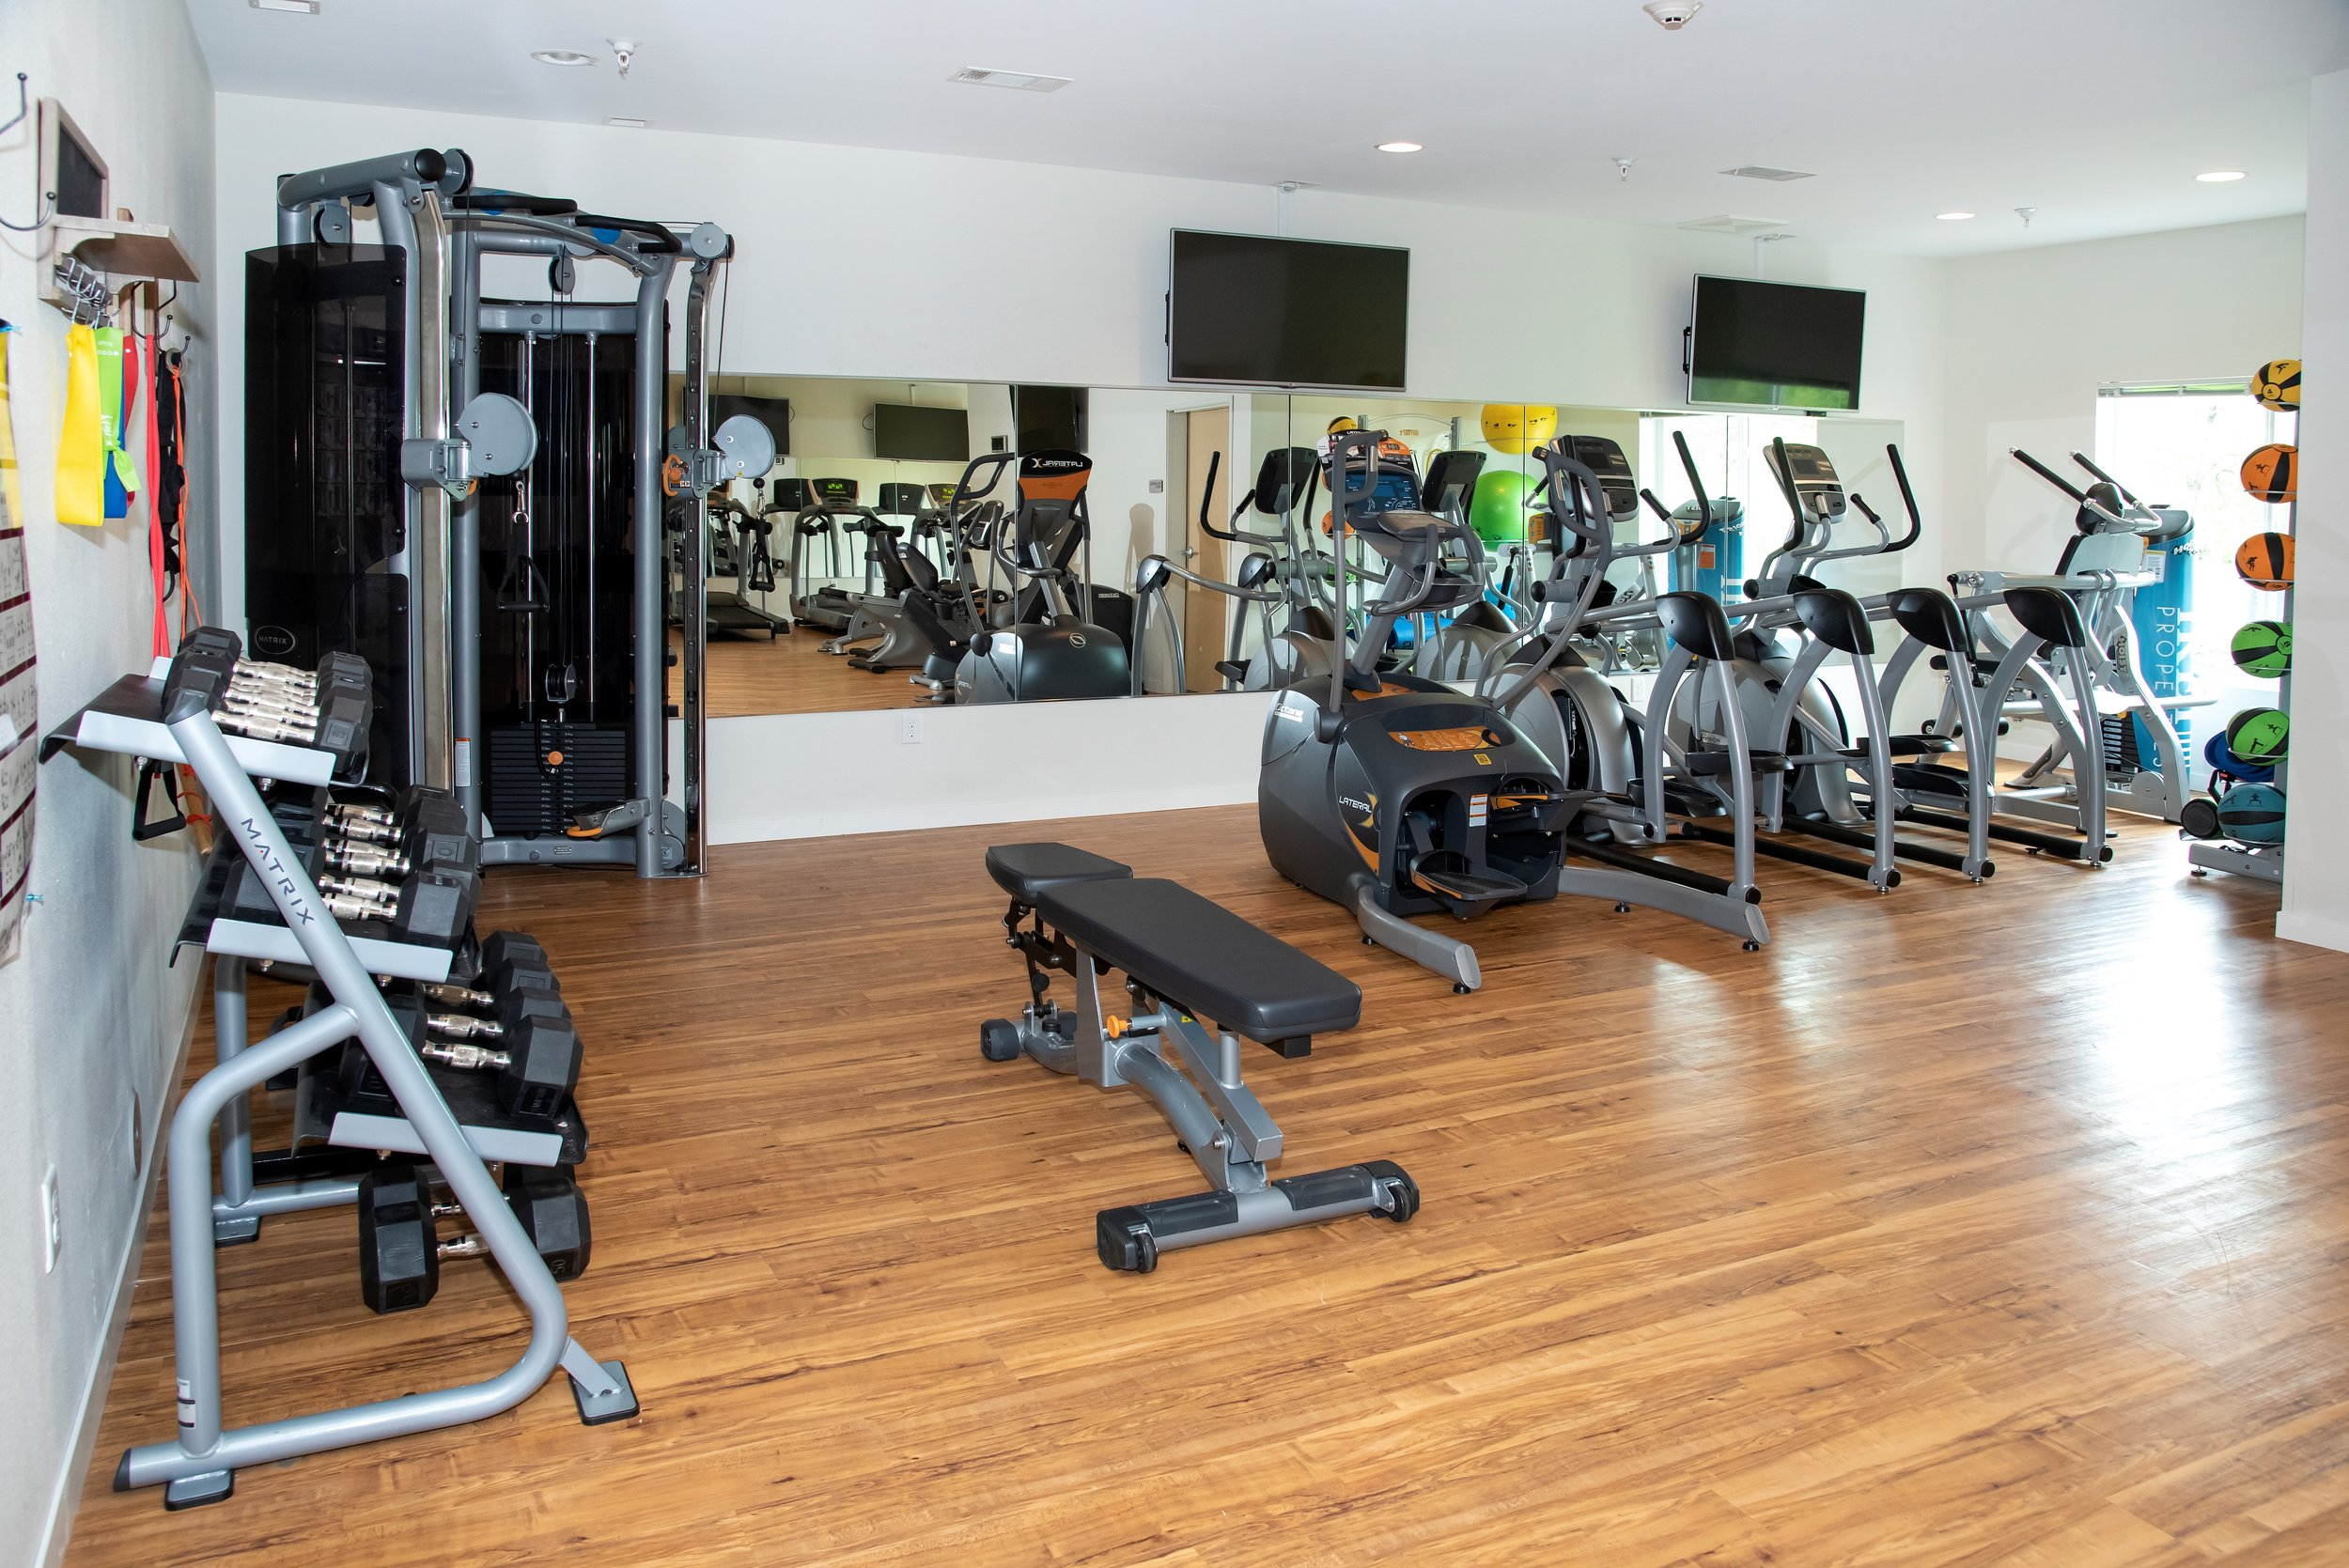 A Lot of Great Equipment to Choose from in our State of the Art Fitness Center